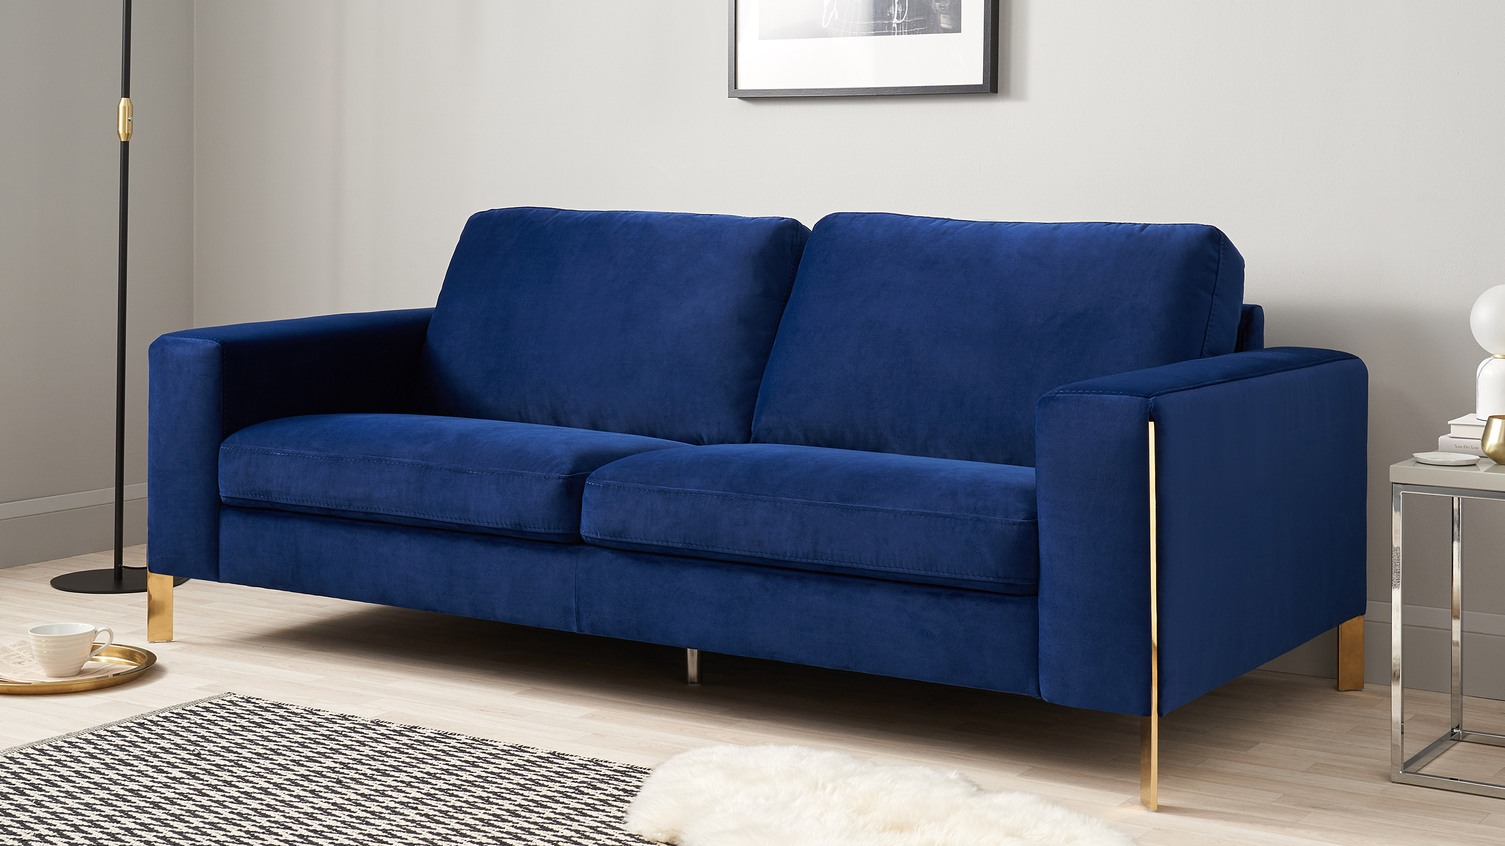 6 Sofa Buying Mistakes You'll Want To Avoid!